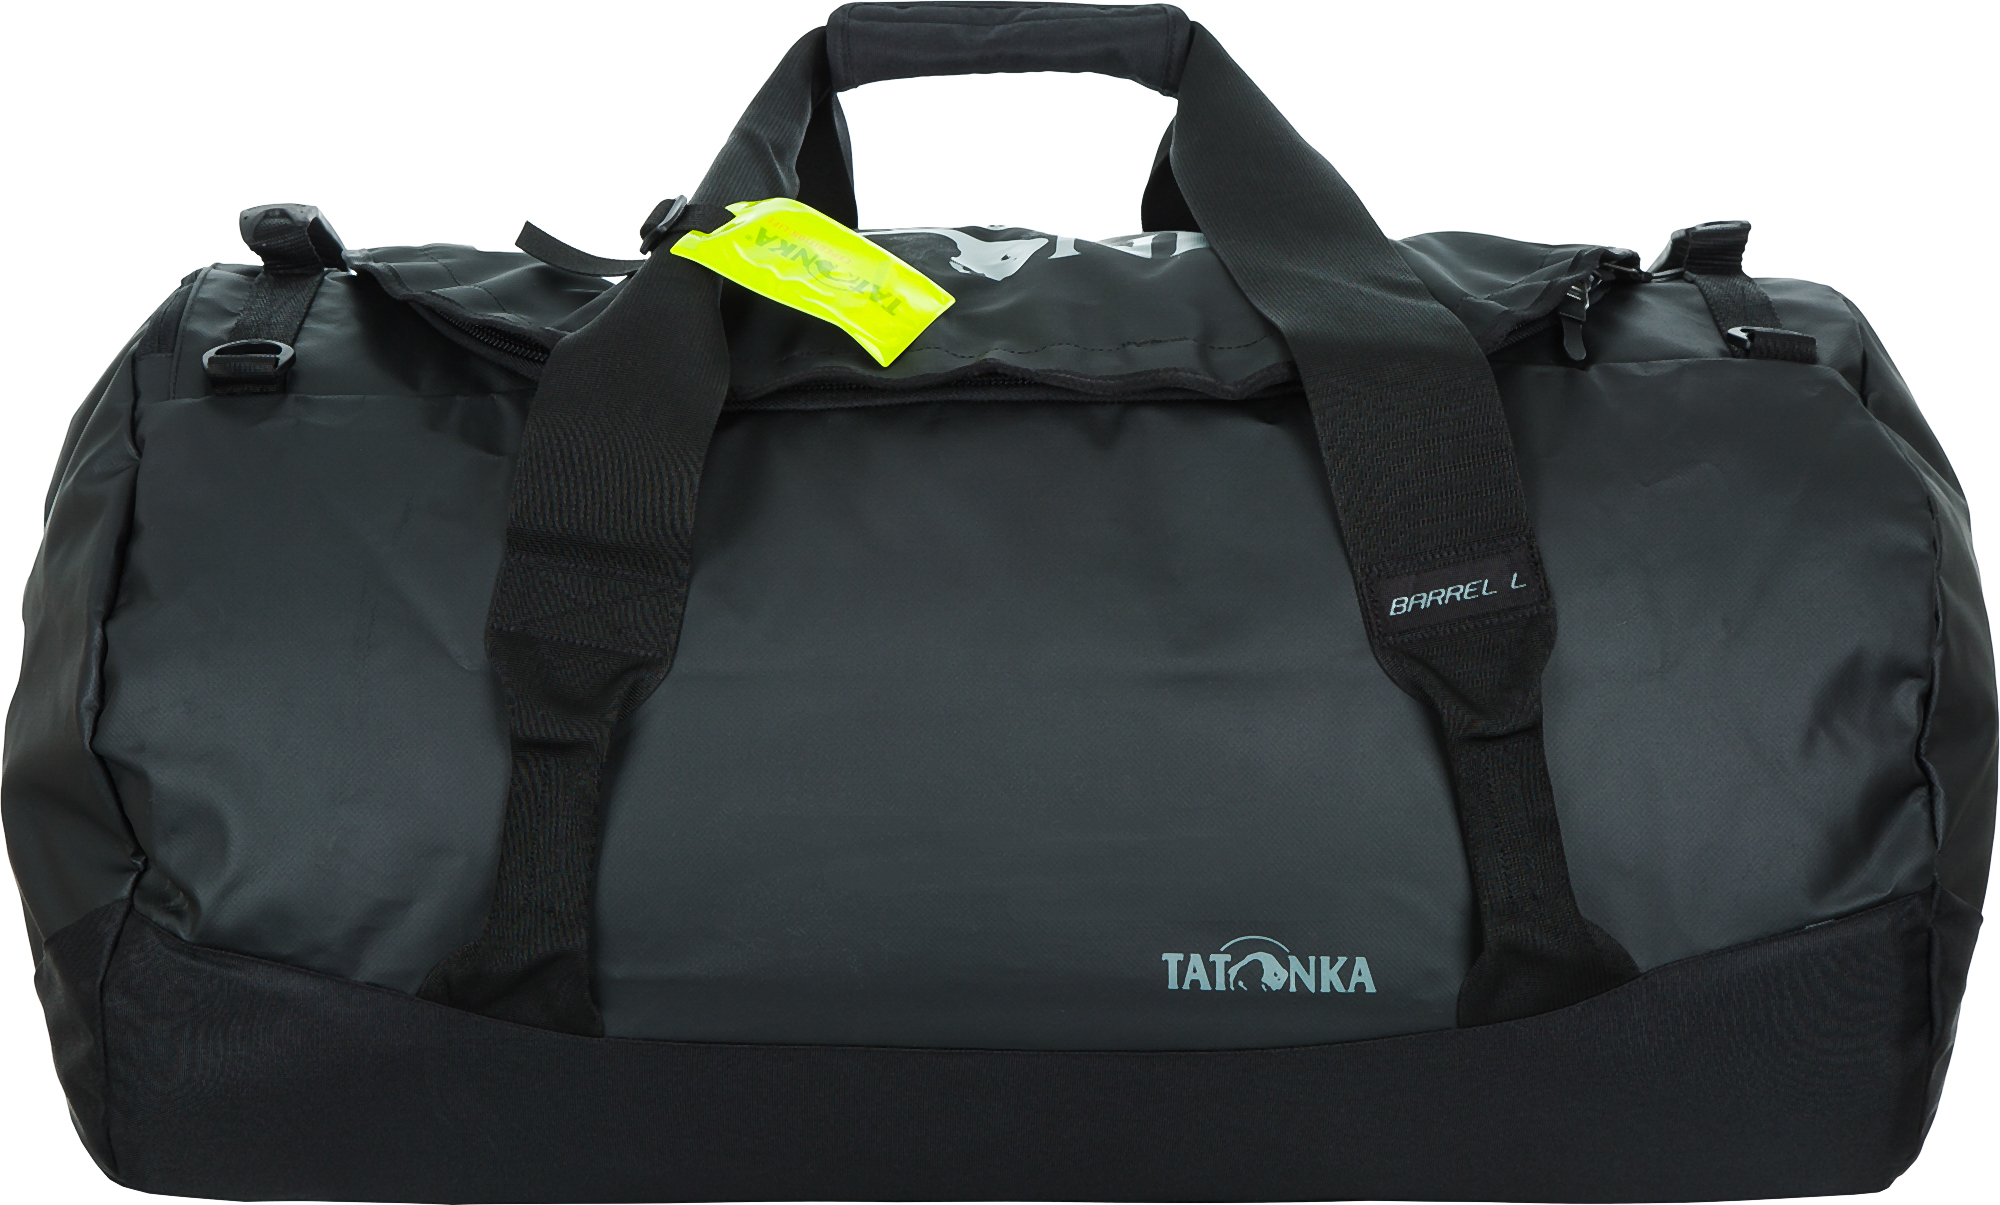 Tatonka Сумка Tatonka BARREL XL 110 л